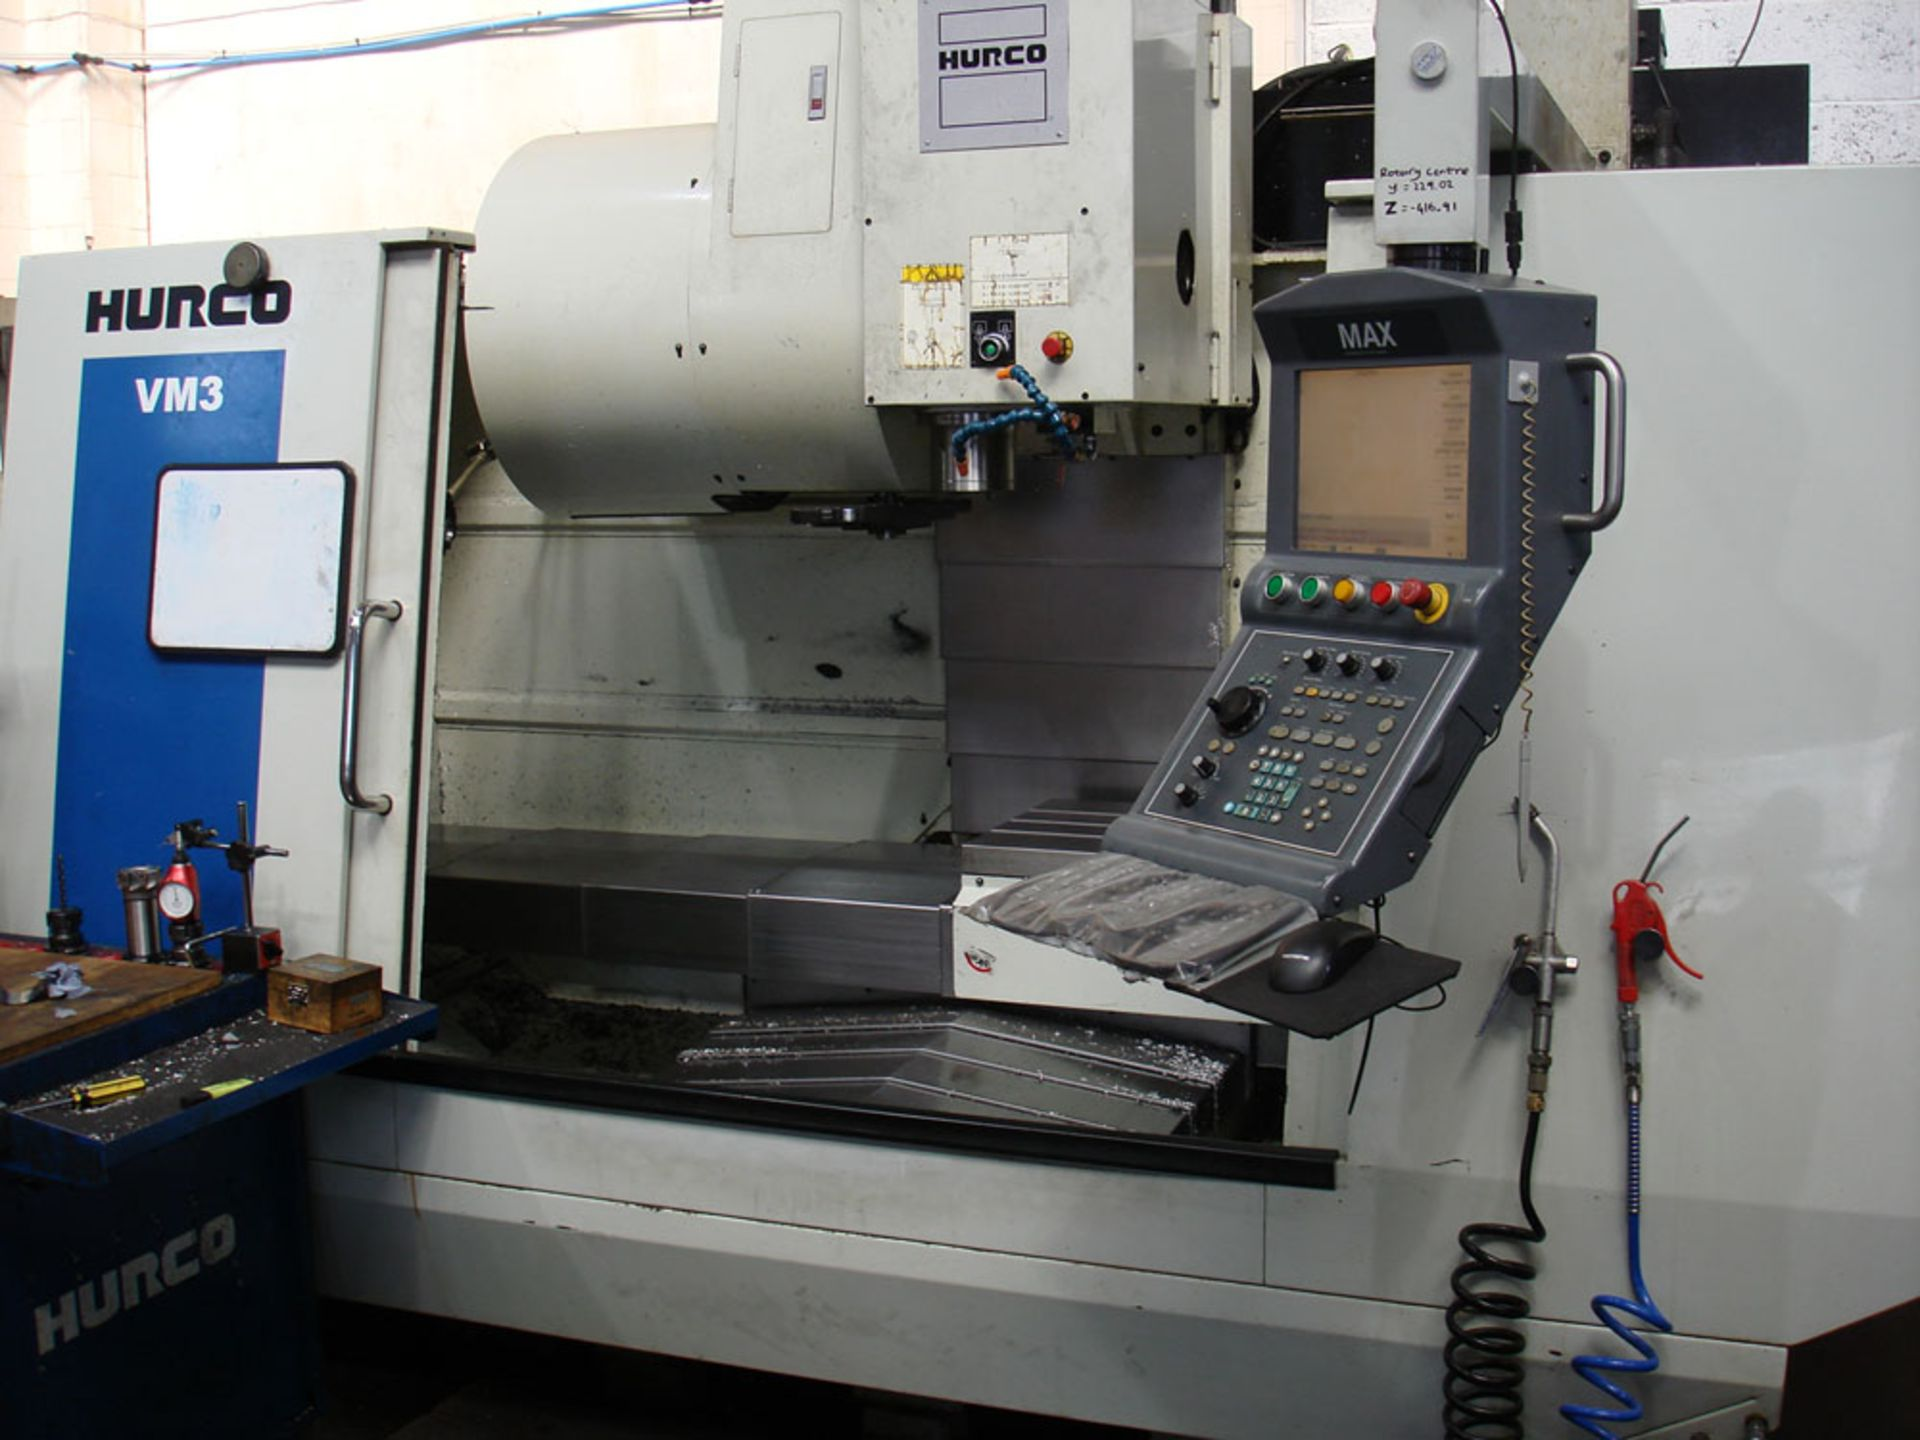 HURCO VM3 Vertical Machining Centre. Year 2008. Hurco Max Control. Table Size 1321 x 457 mm. - Image 2 of 9